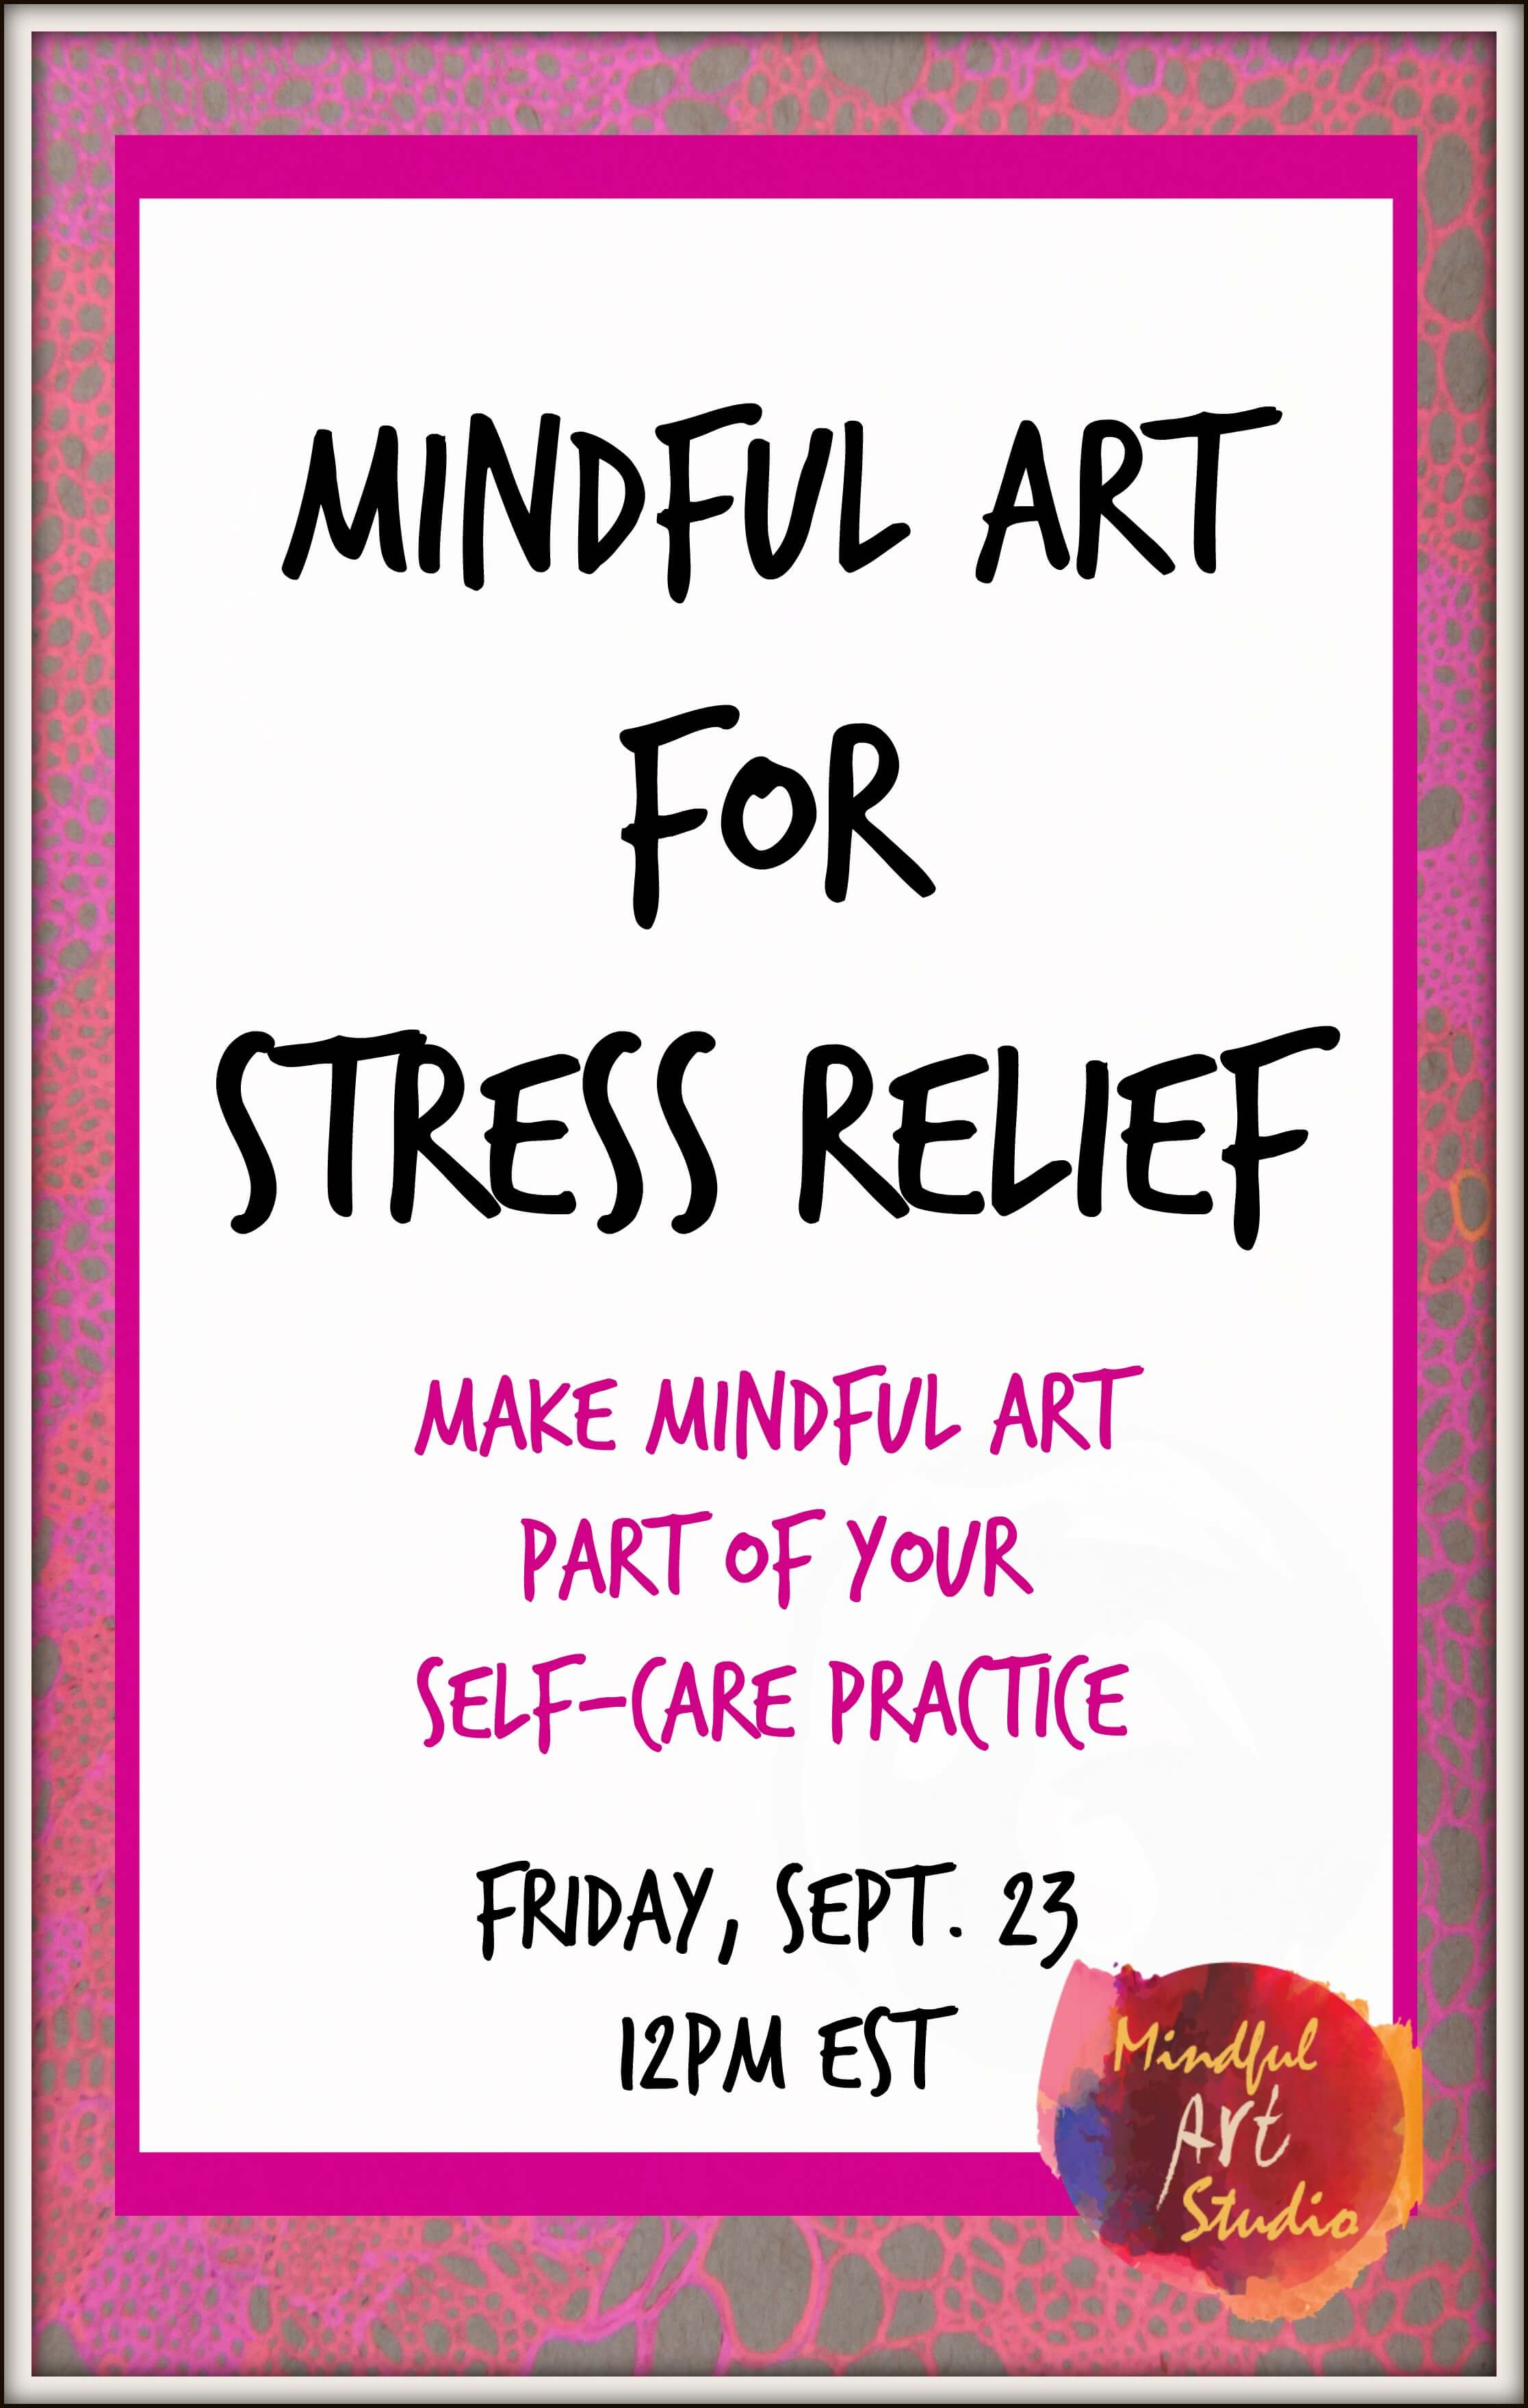 mindful art for stress relief, mindfulness, mindful art, art for mindfulness, art for stress